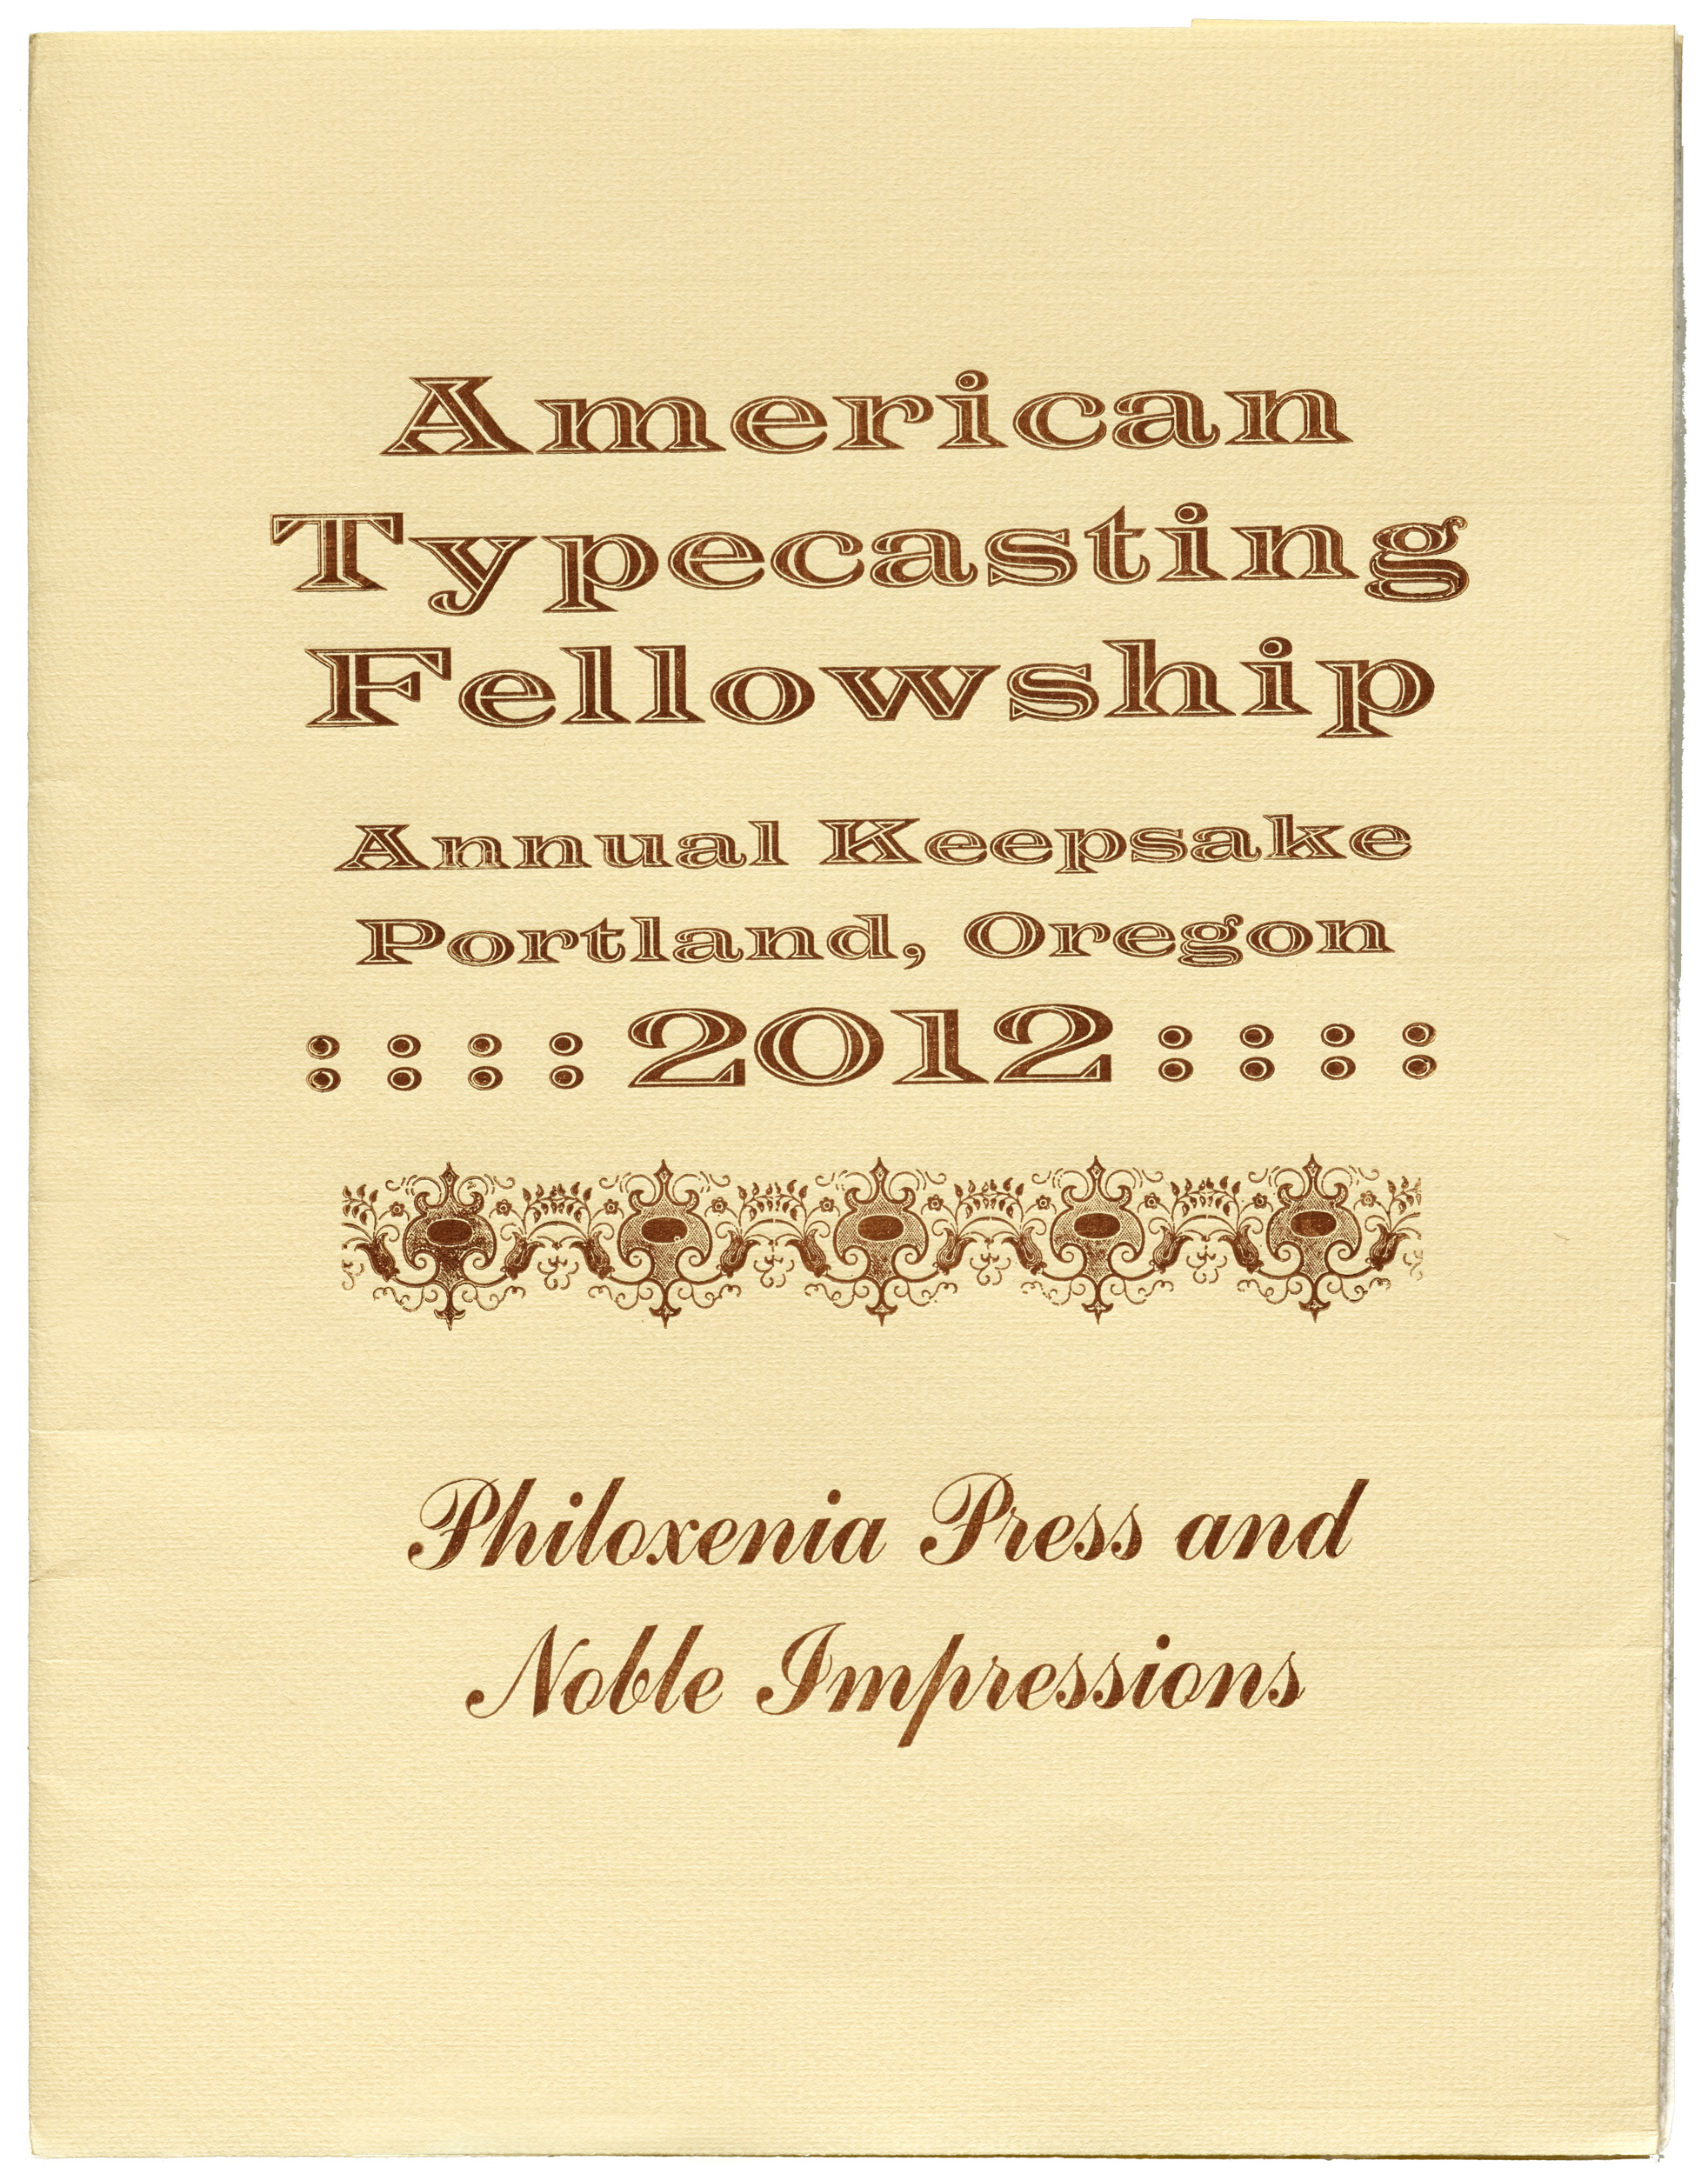 Specimen Book. American Typecasting Fellowship, Portland, Oregon, 2012. Keepsake printed for the Fellowship, 12 pp, with multiple typefaces & vignettes. 10 x 13.